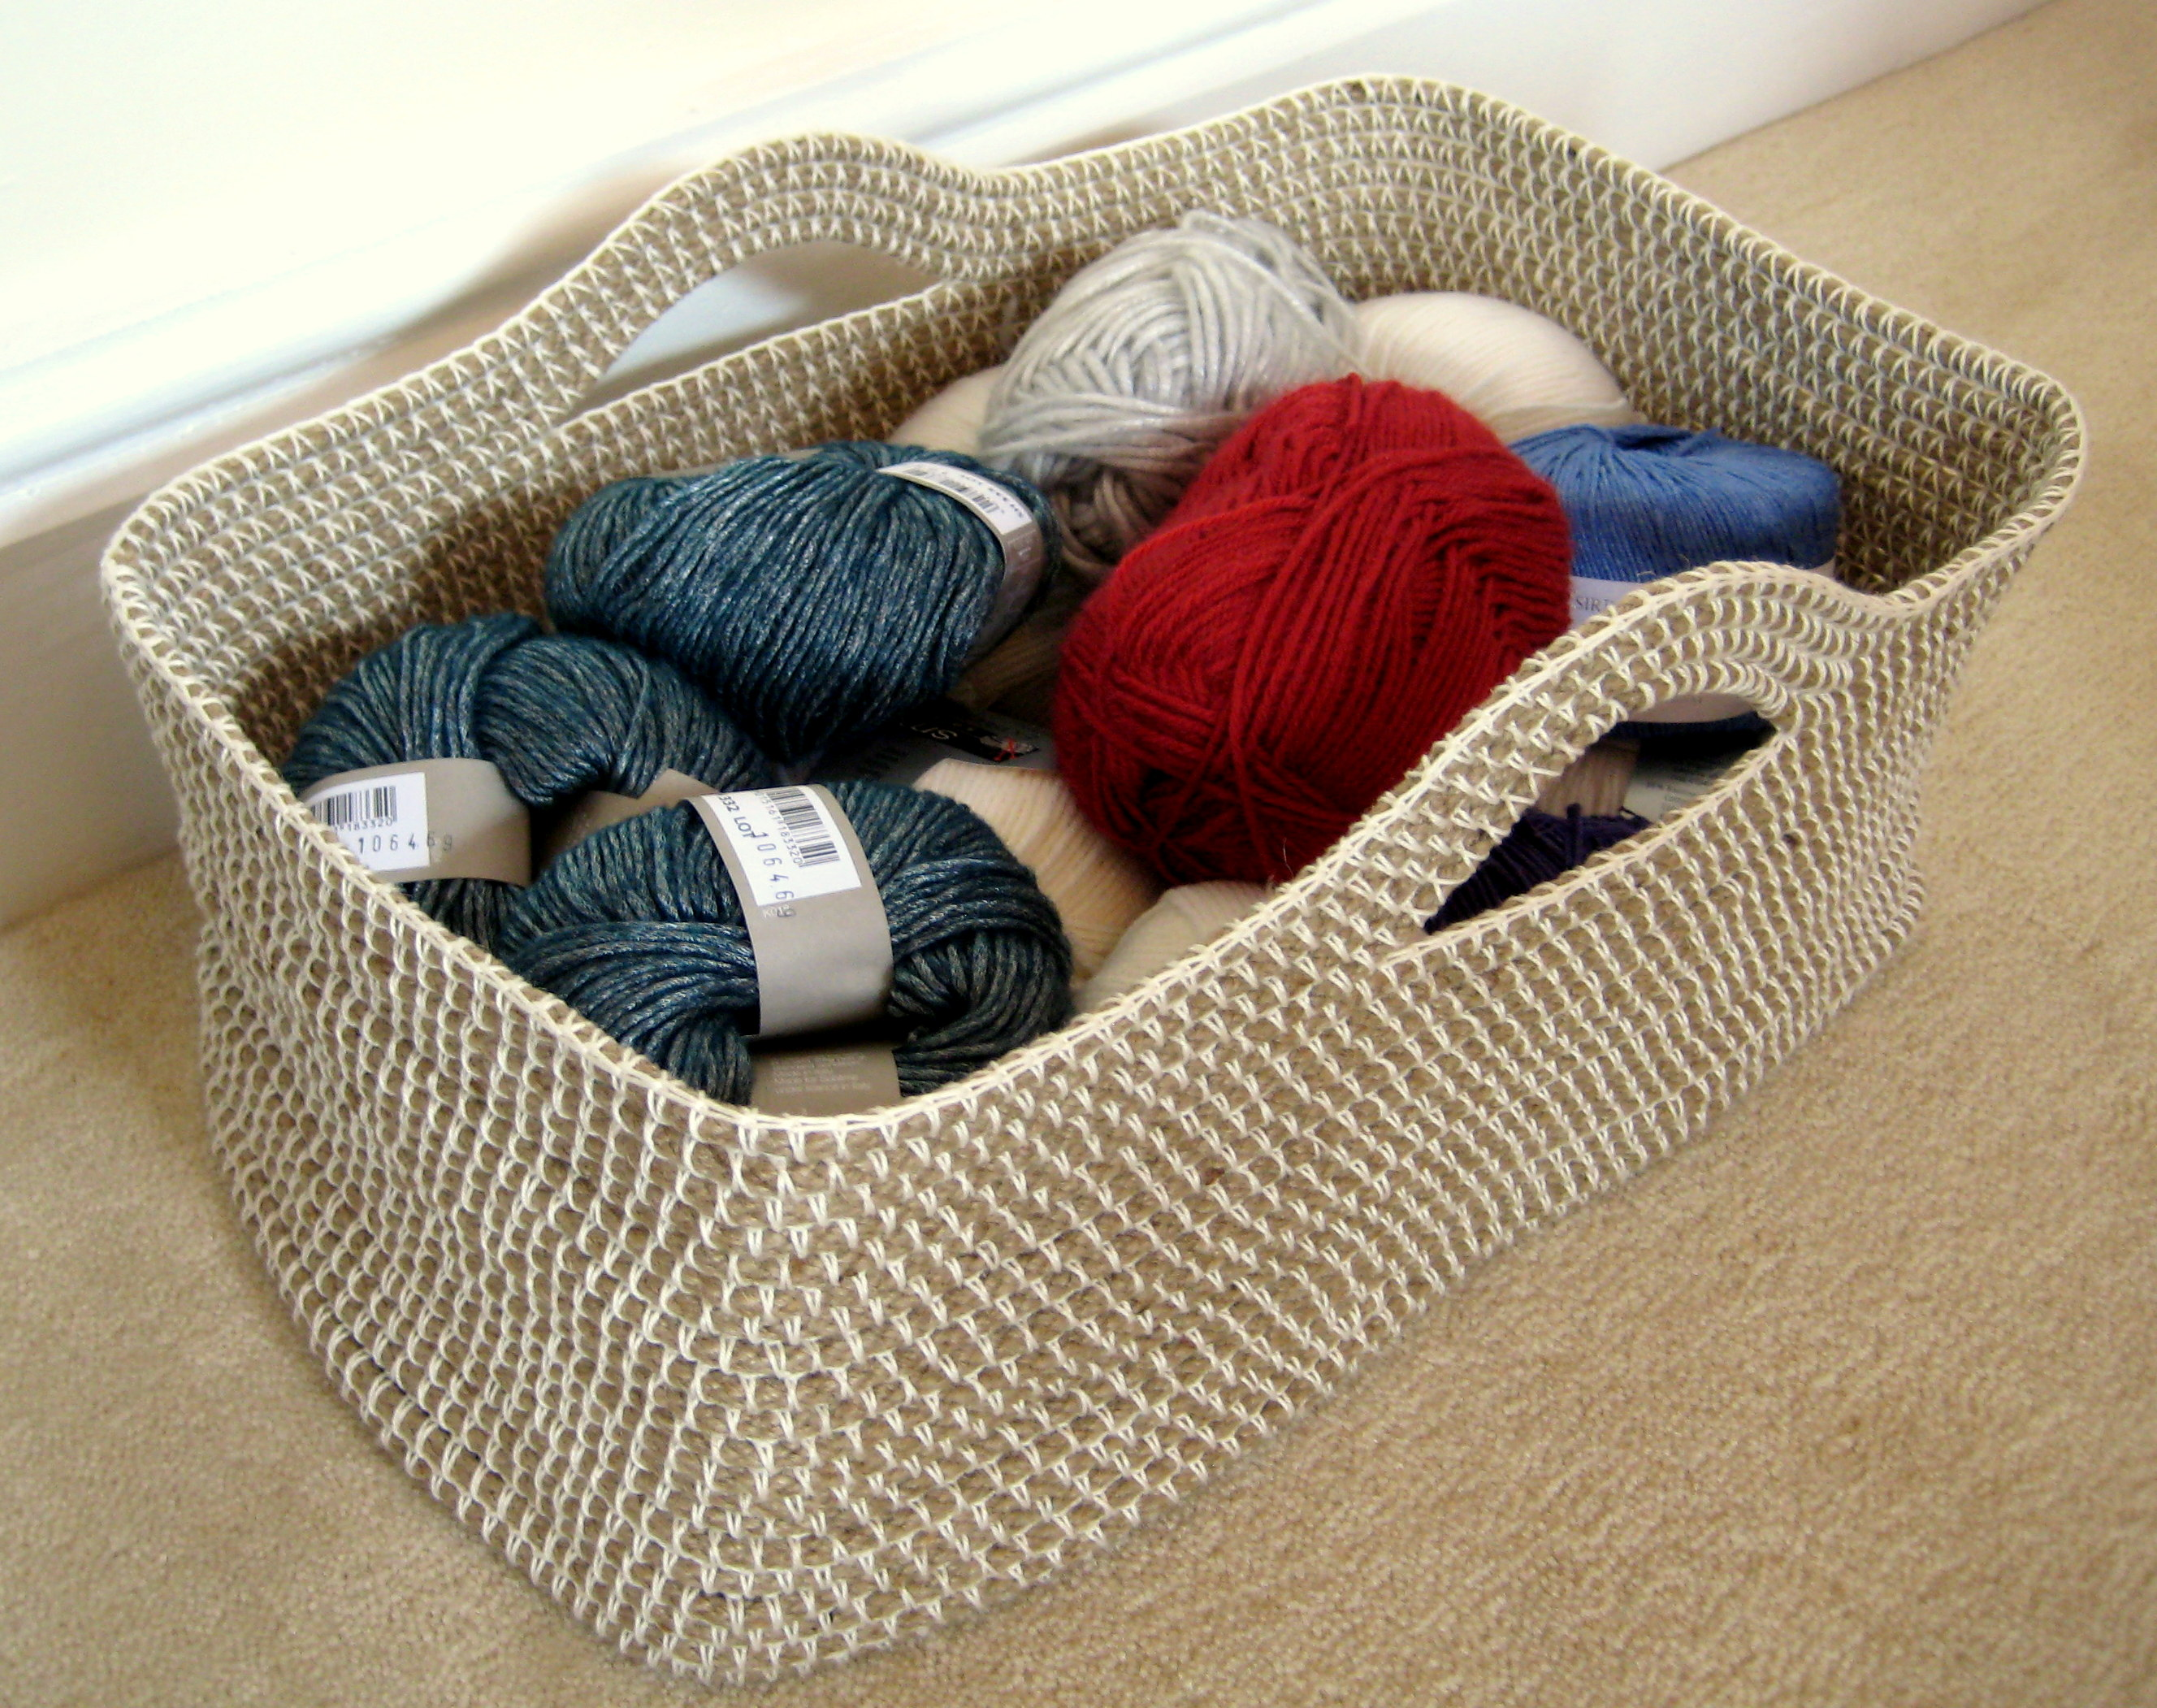 Crochet Rope Basket | Make My Day Creative